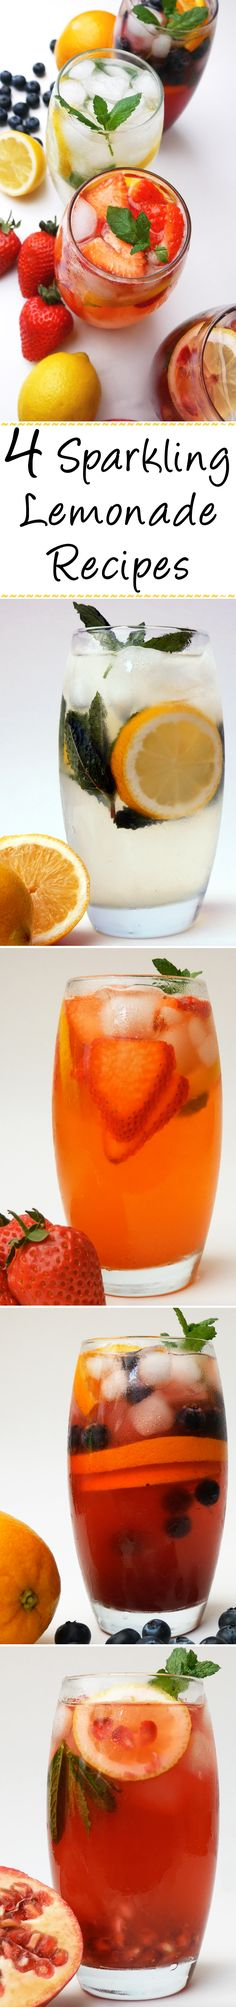 Classic Lemonade - Strawberry Lemonade - Blueberry Orange Lemonade - Pomegranate Lemonade | Learn how to make all of these delicious drinks that will be great for a warm summer day!